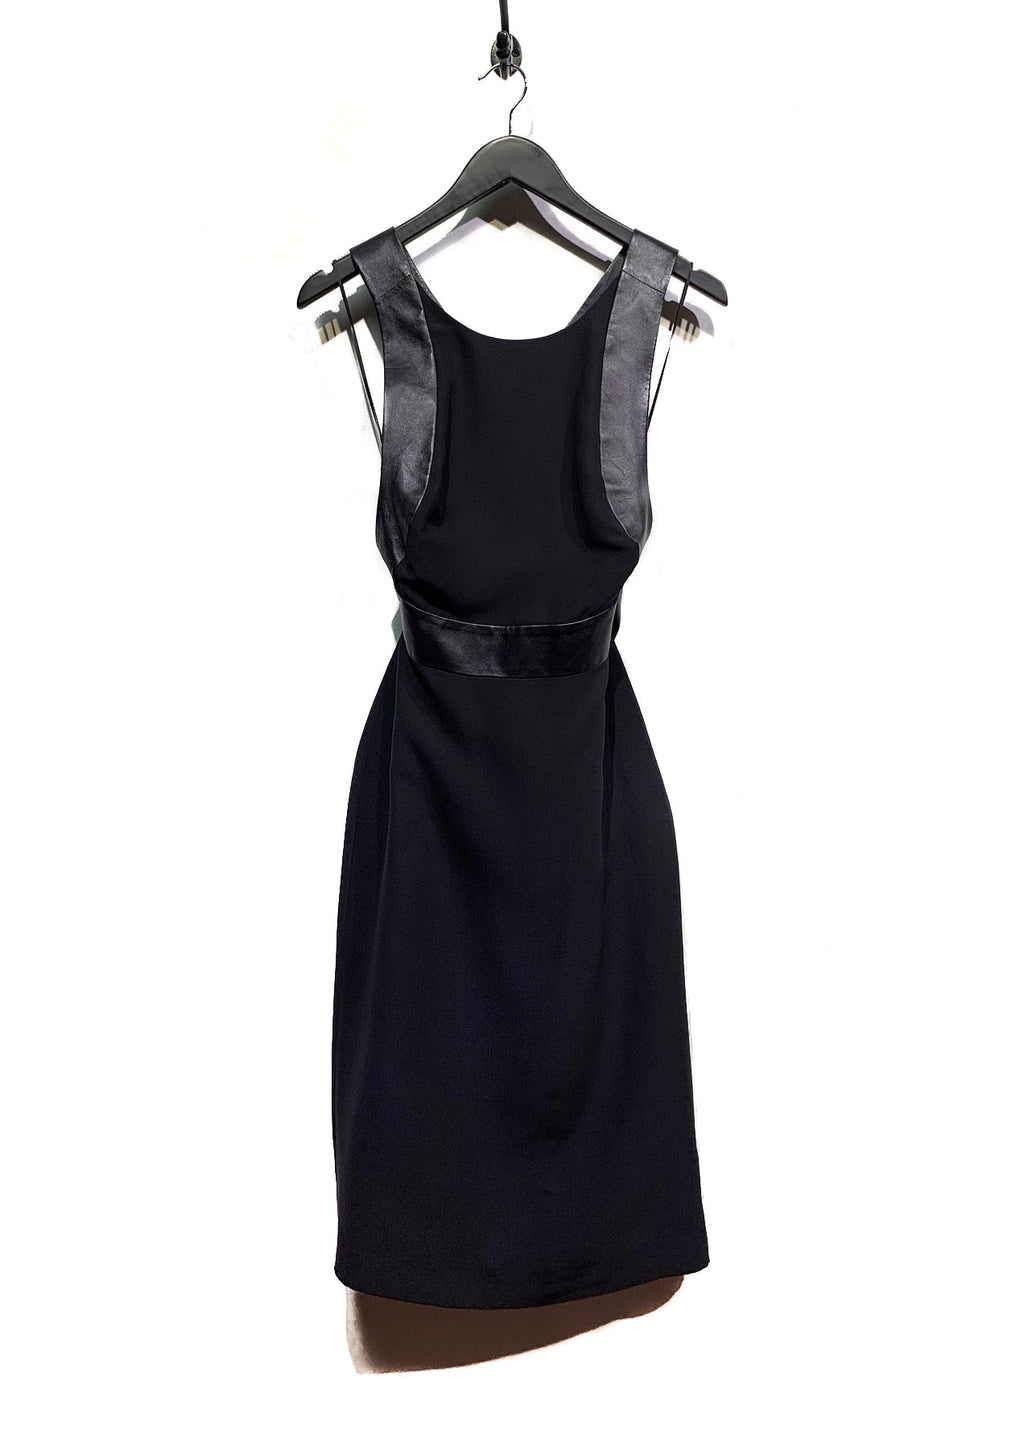 Gucci Black Leather-Trimmed Criss Cross Dress